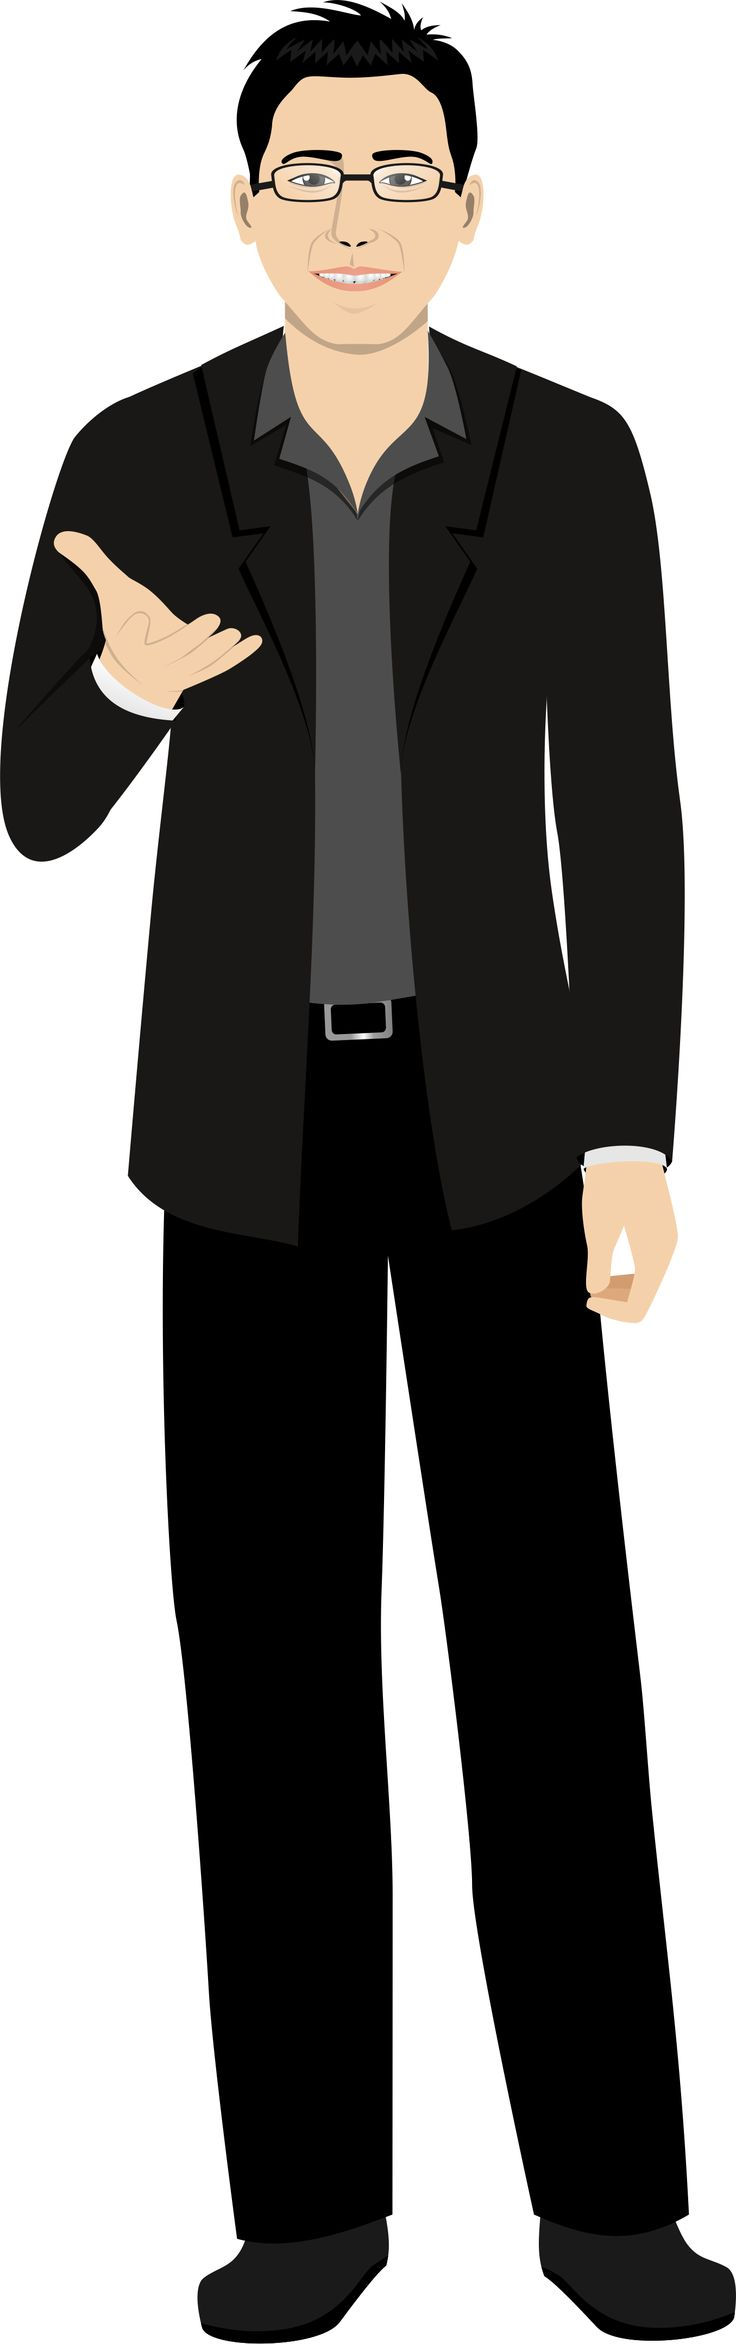 Customized illustration avatar for eLearning with Adobe Captivate, Techsmith Camtasia, and Articulate Storyline.